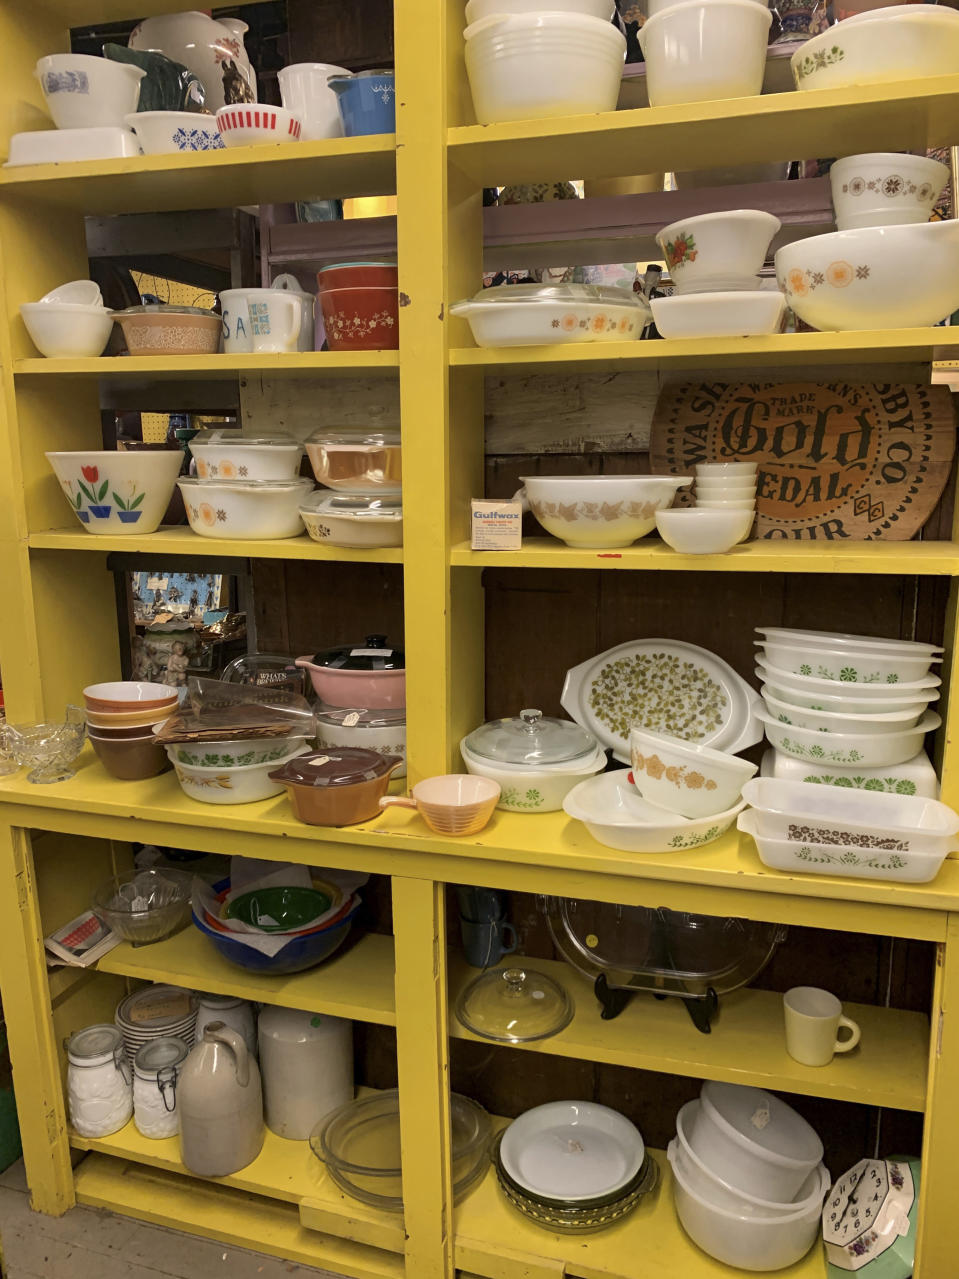 """This image provided by Tracee Herbaugh shows one area of vintage dishes for sale at """"Downstairs at Felton Antiques"""" in Waltham, Massachusetts. Some collectors buy vintage dishware to try to re-sell it at a profit, while others are in it for nostalgia. """"It reminds them of their mothers, aunts, grandmothers,"""" said Hope Chudy, owner of Downstairs at Felton Antiques. (Tracee Herbaugh via AP)"""